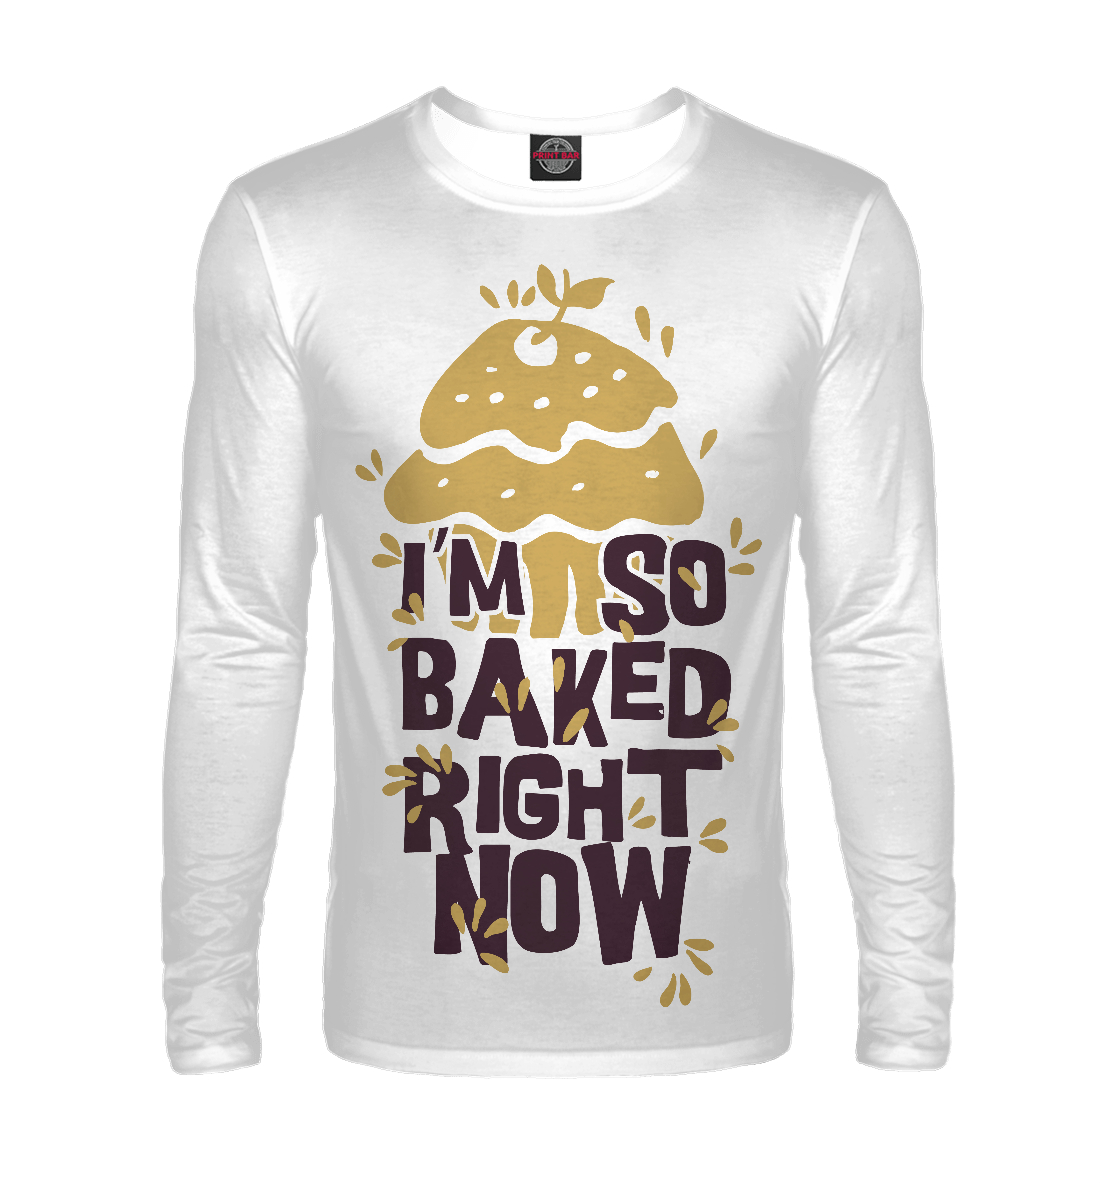 I`m baked right now mac so haute right now